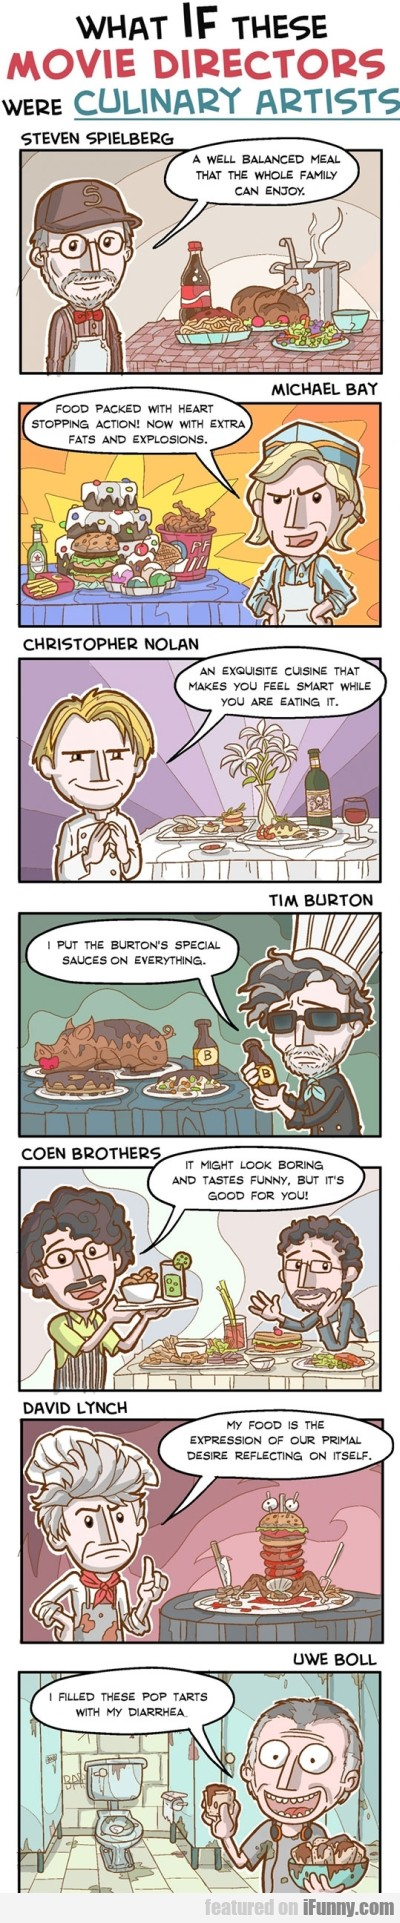 What If There Movie Director Were Culinary